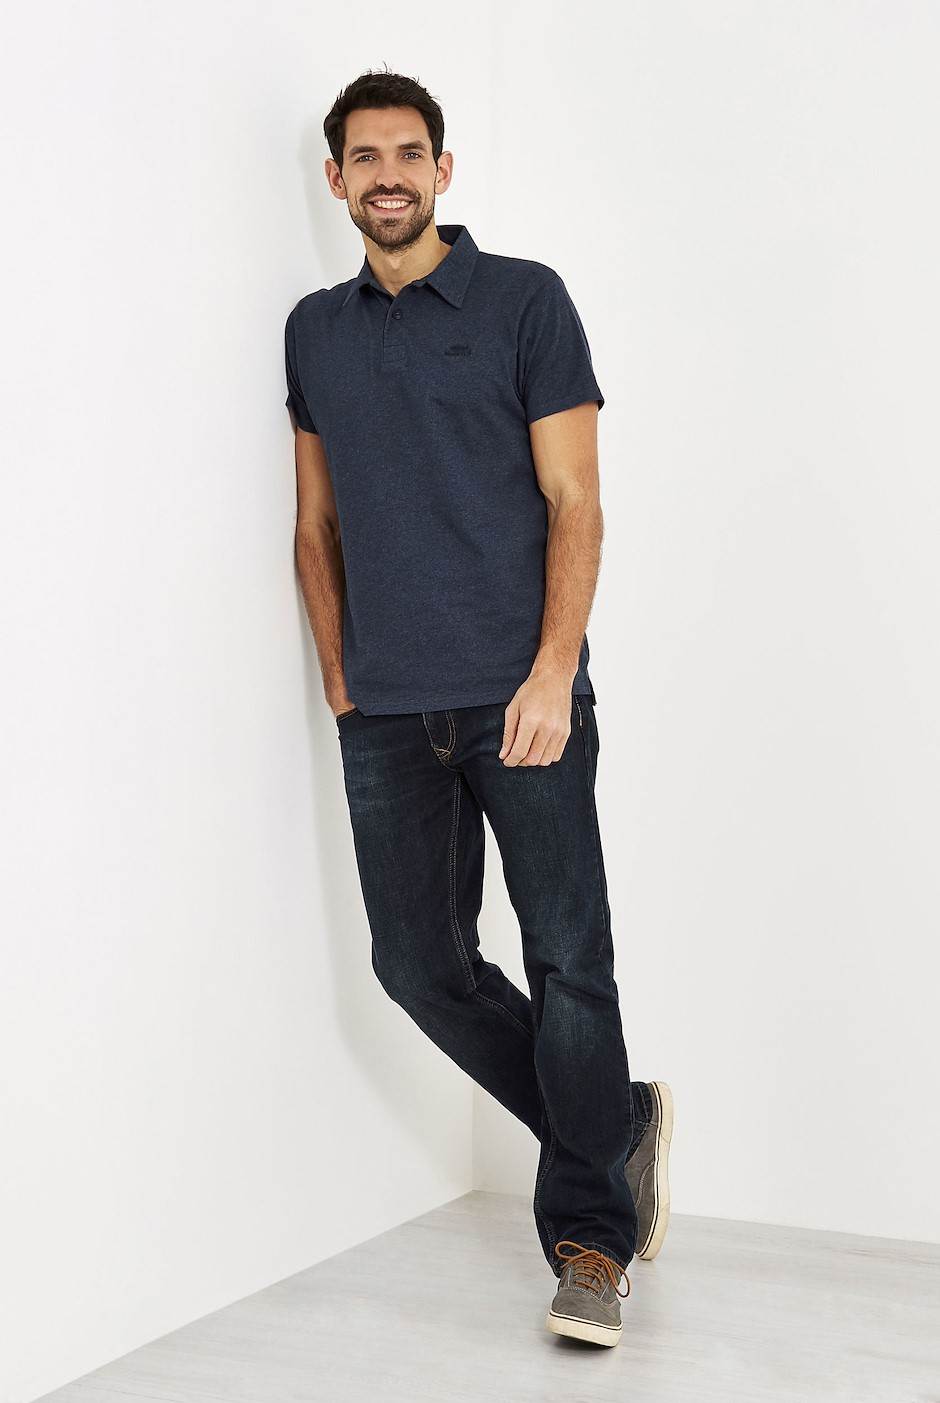 Quay Branded Polo Shirt Maritime Blue Marl